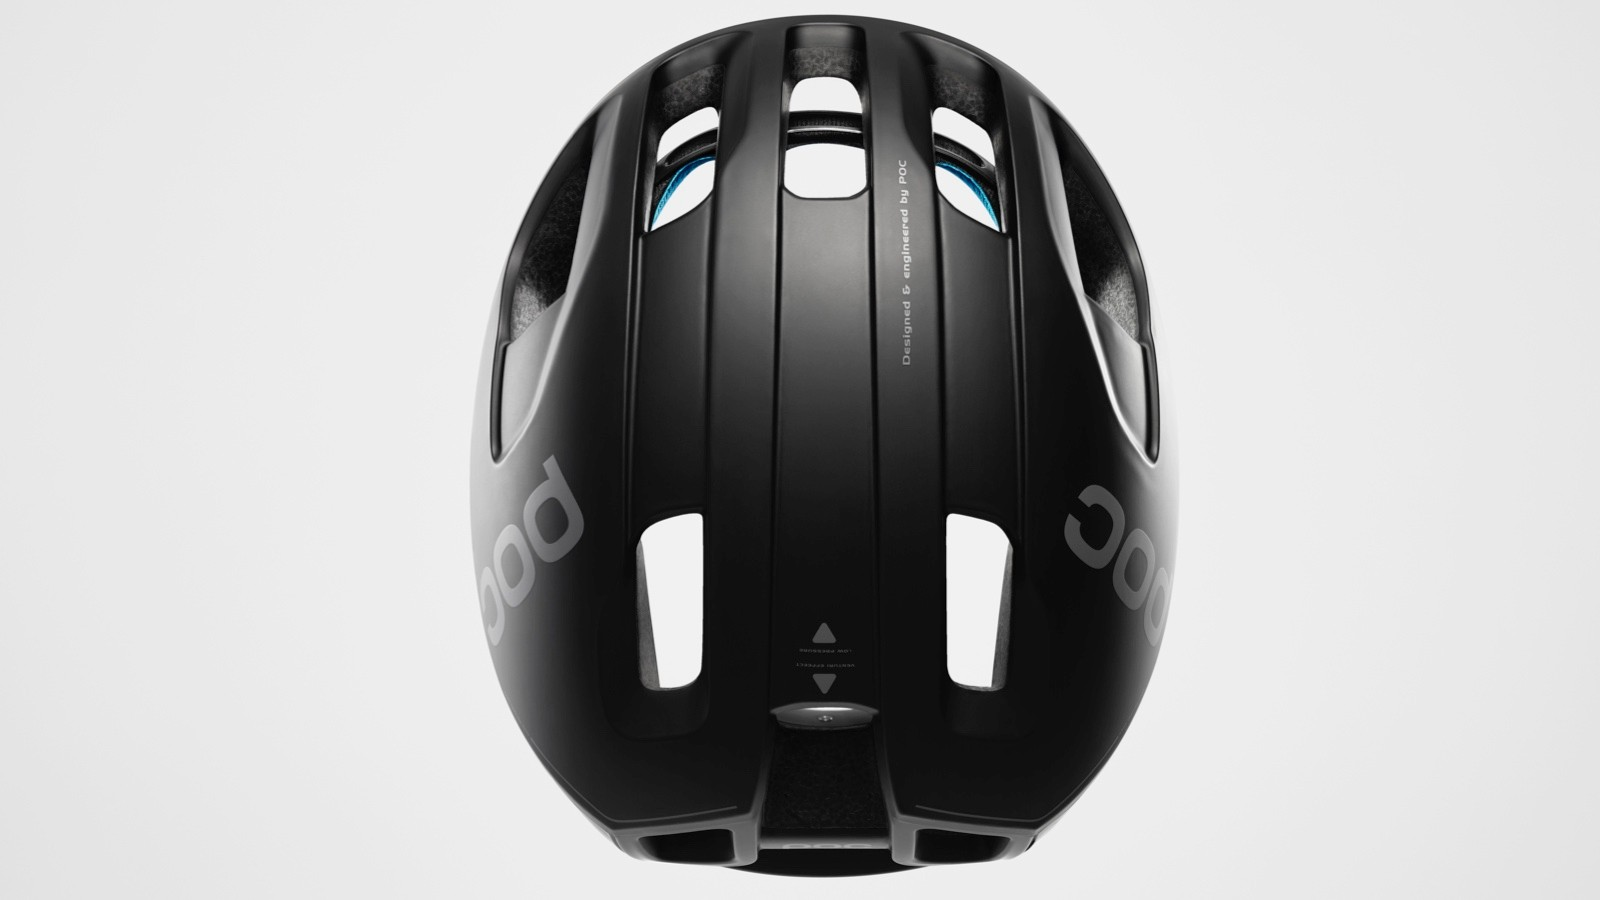 POC claims the helmet's internal channels, exit ports and rear shape combine to make a fast but well-ventilated helmet